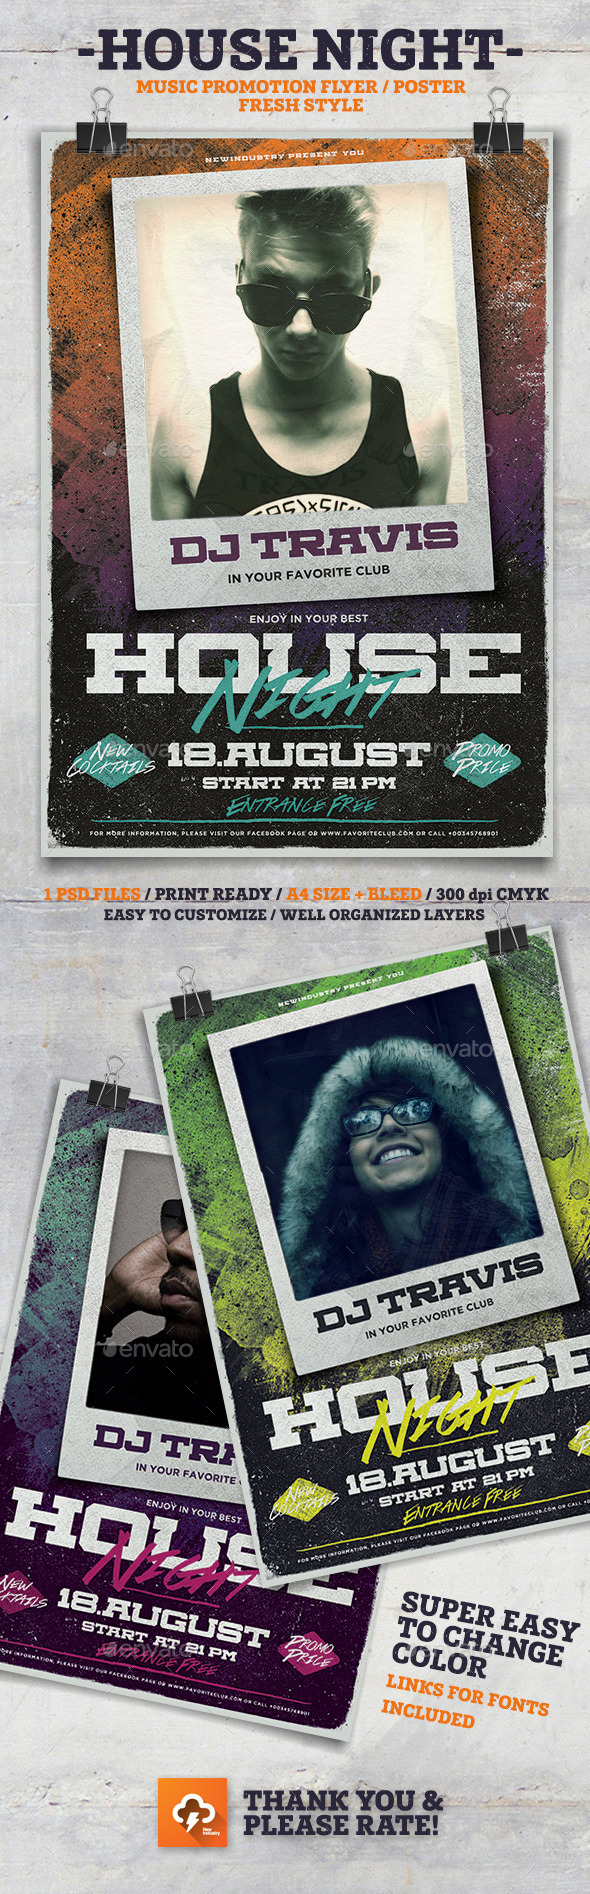 House Night Poster Flyer